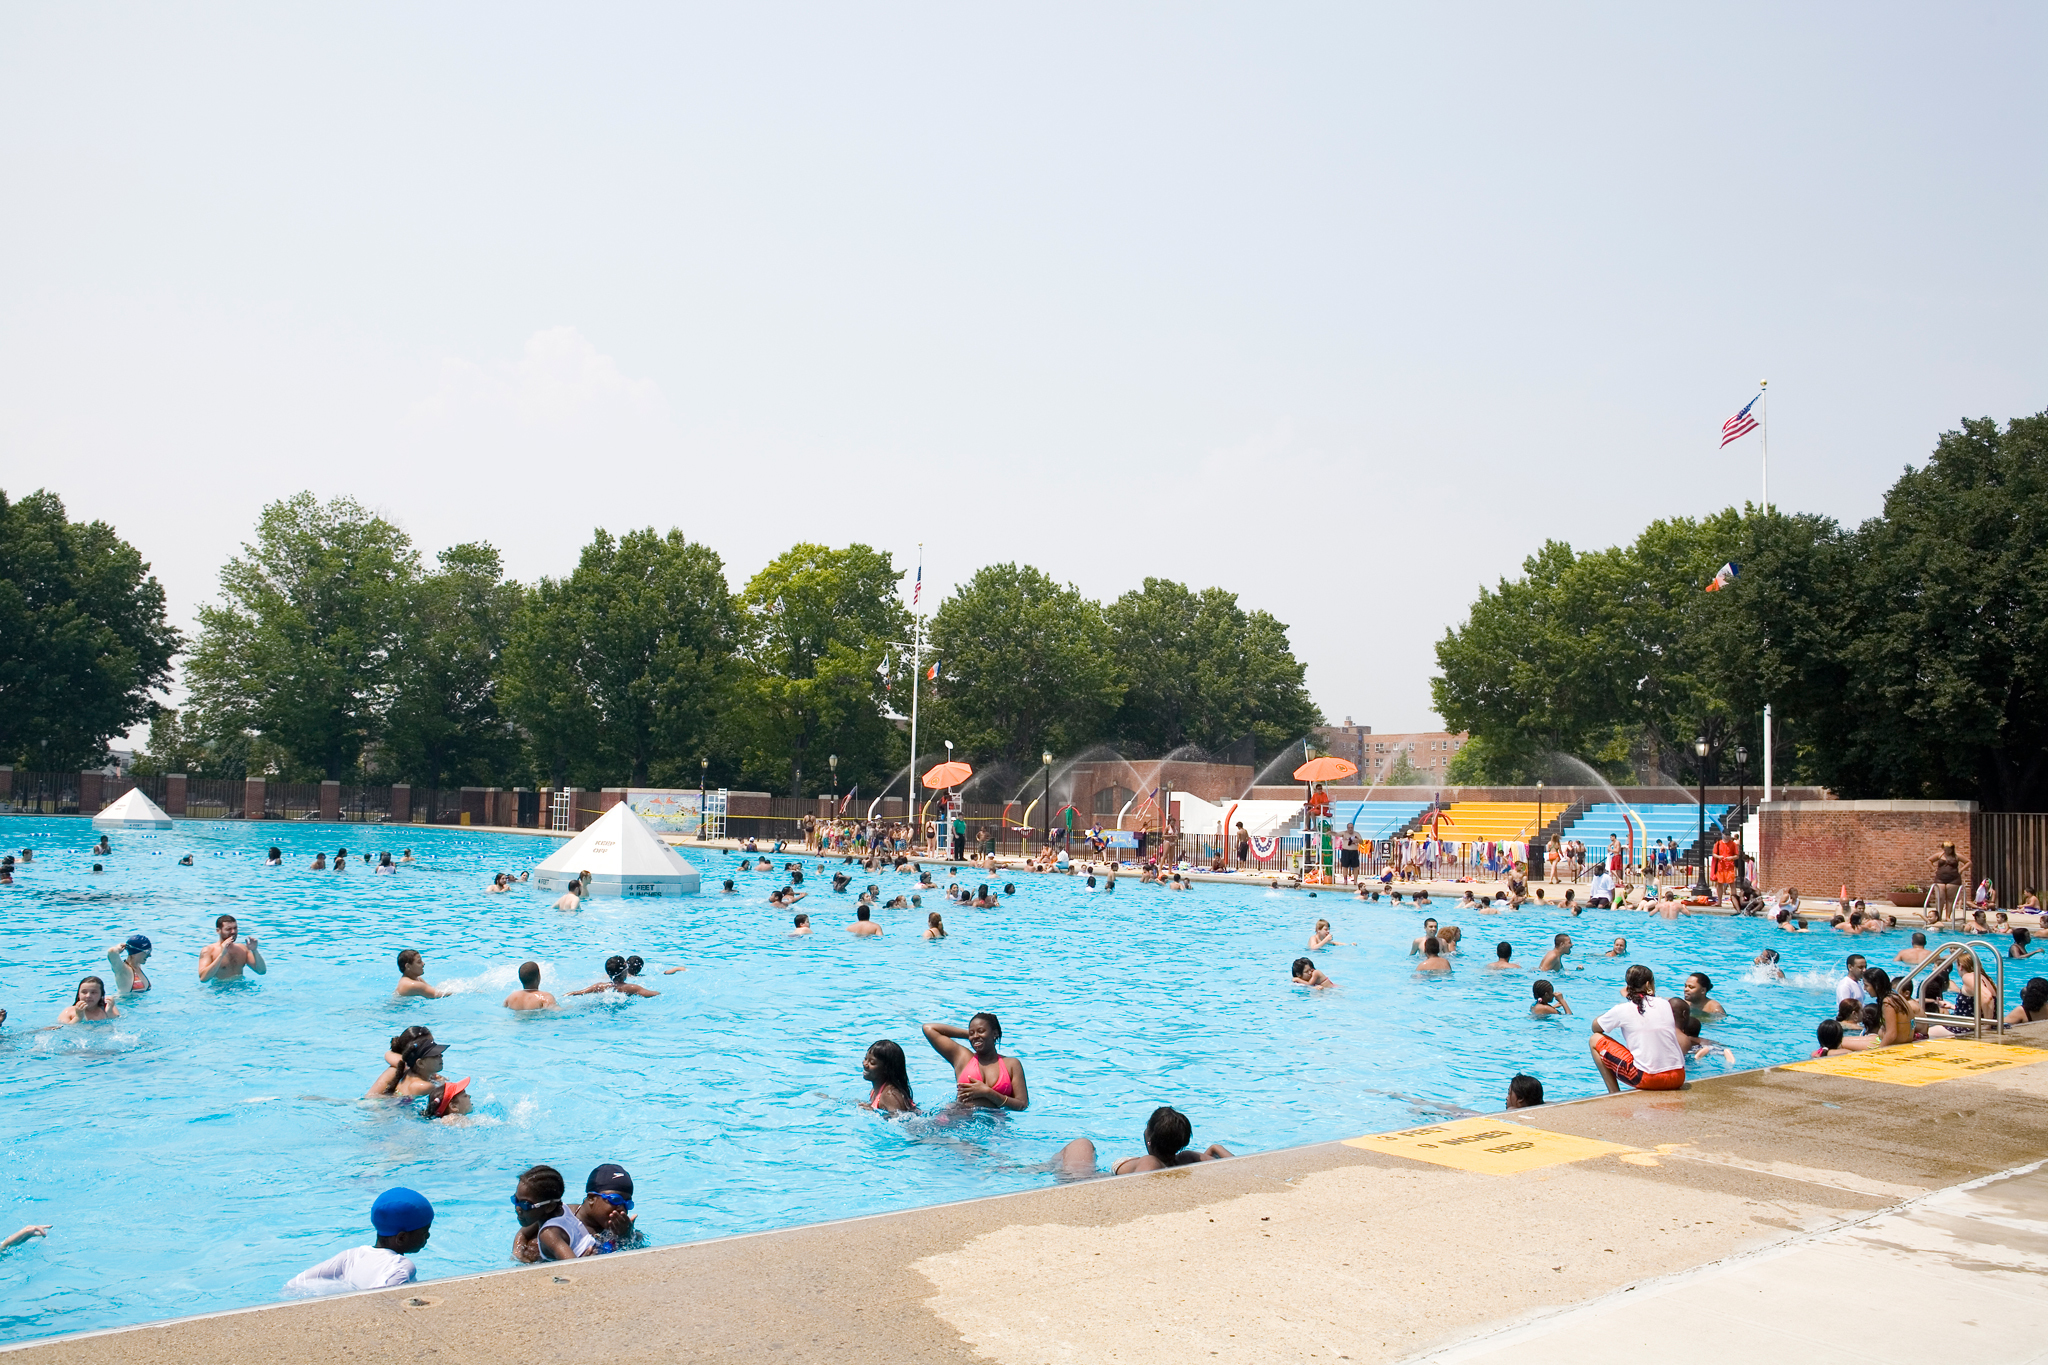 12 of the best public pools nyc has for swimming in summer - Sportspark swimming pool new york ny ...